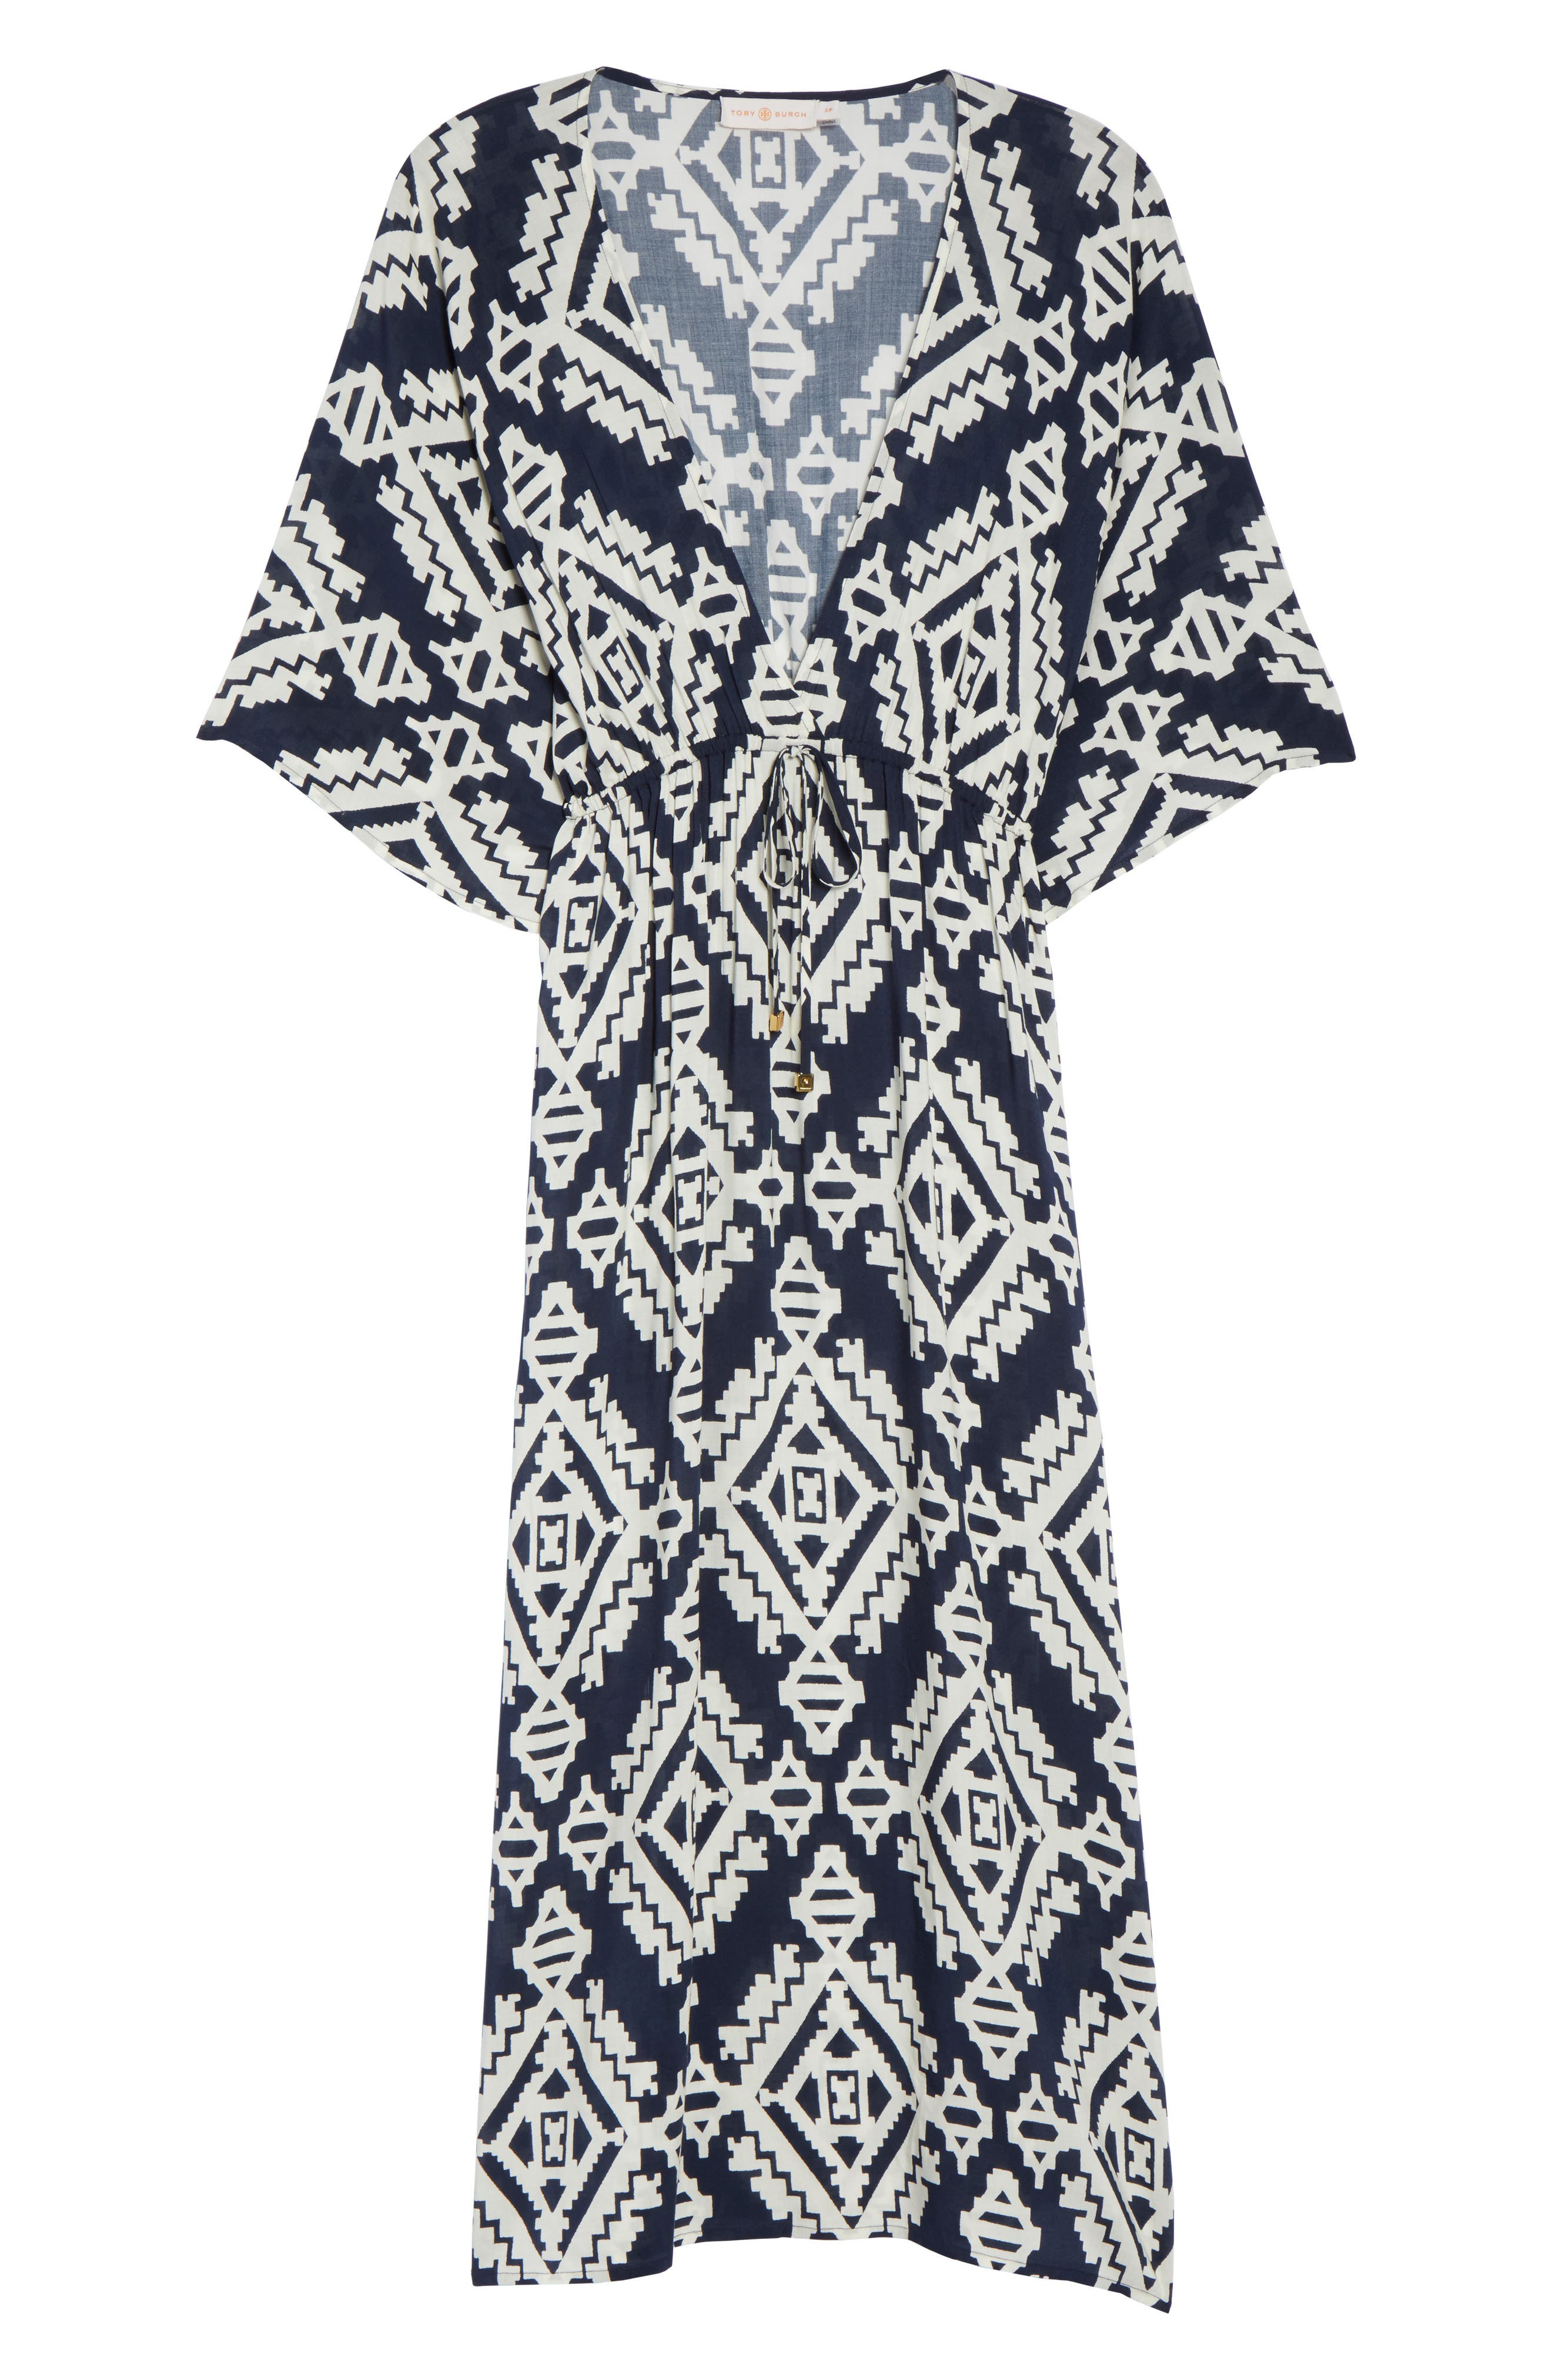 Tapestry Geo Beach Dress,                             Alternate thumbnail 6, color,                             Tapestry Geo